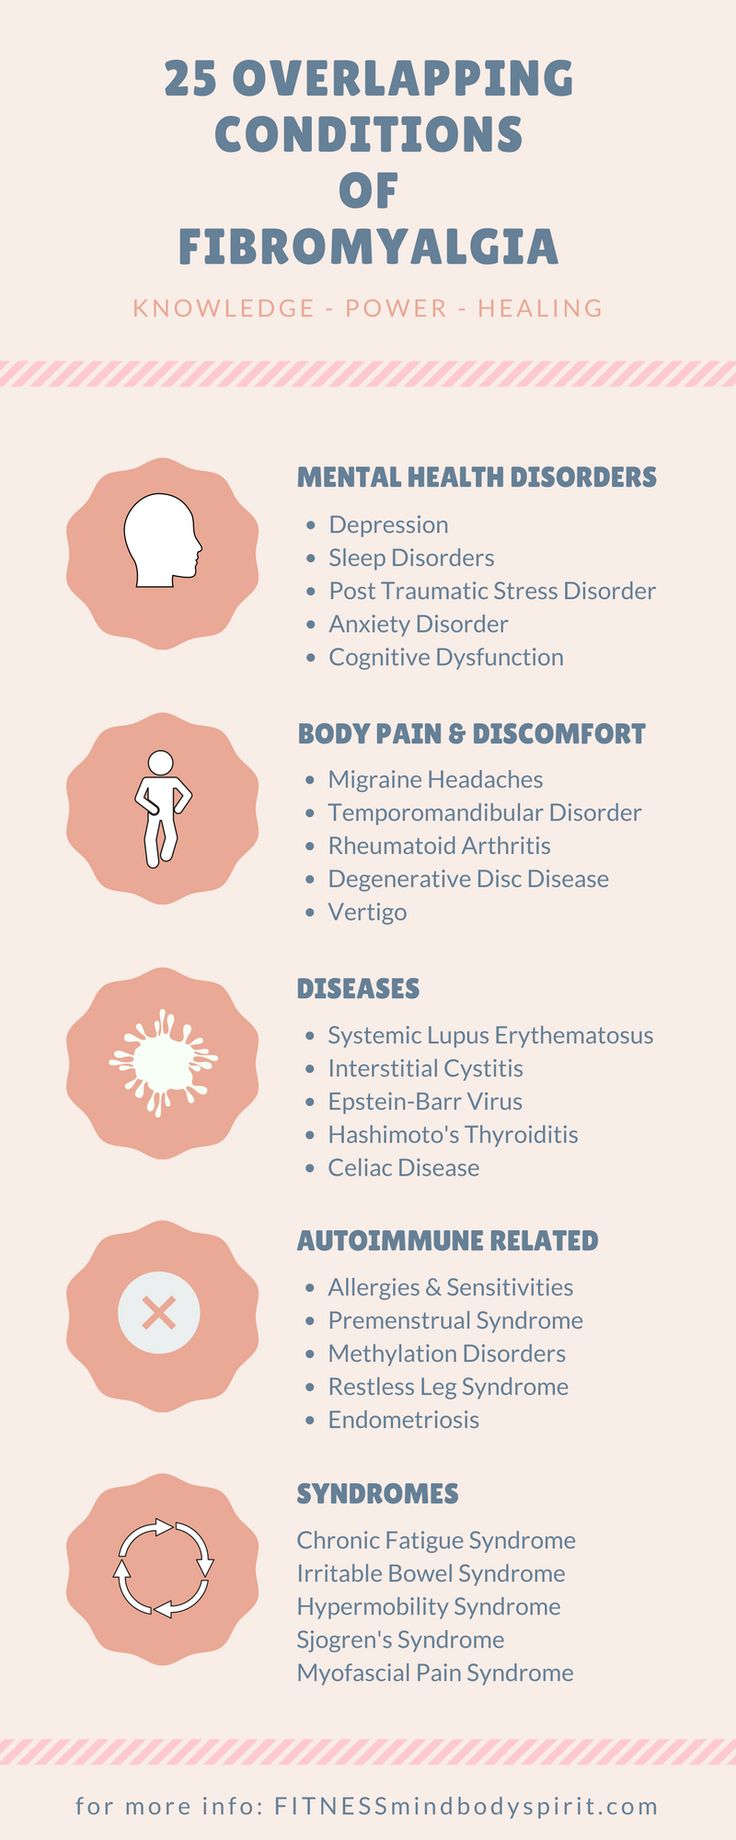 Fibromyalgia is not a mental health disorder, an autoimmune disorder, or an inflammatory disorder, but it overlaps many such conditions. These are called overlapping because they share many of the same symptoms and are often confused for one another. It takes diligence and patience to tease out one from another, but getting the right